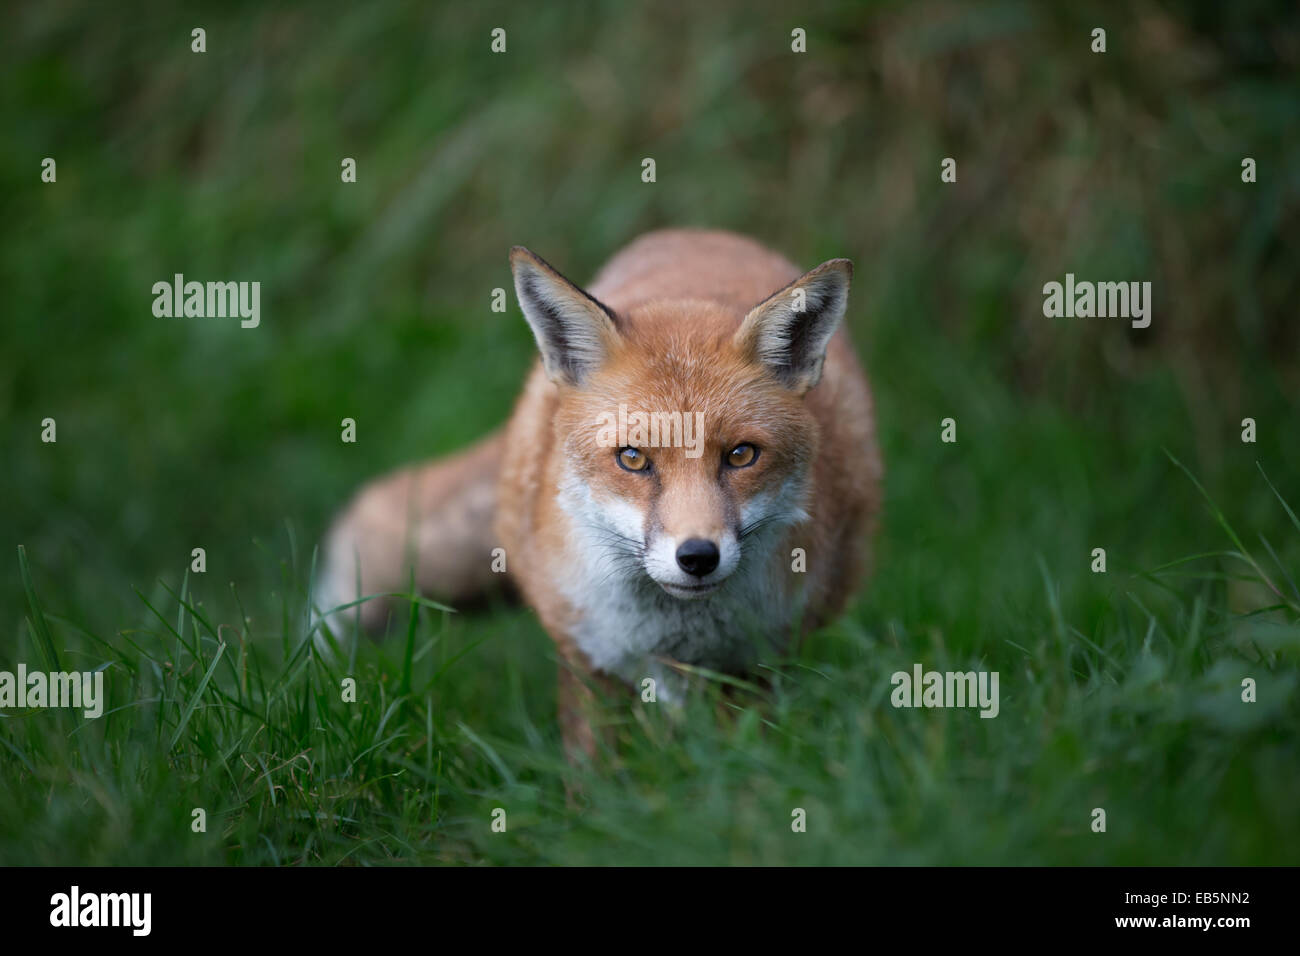 A male European red fox stalking in green grassland. Crouched low, facing camera and looking wily - Stock Image